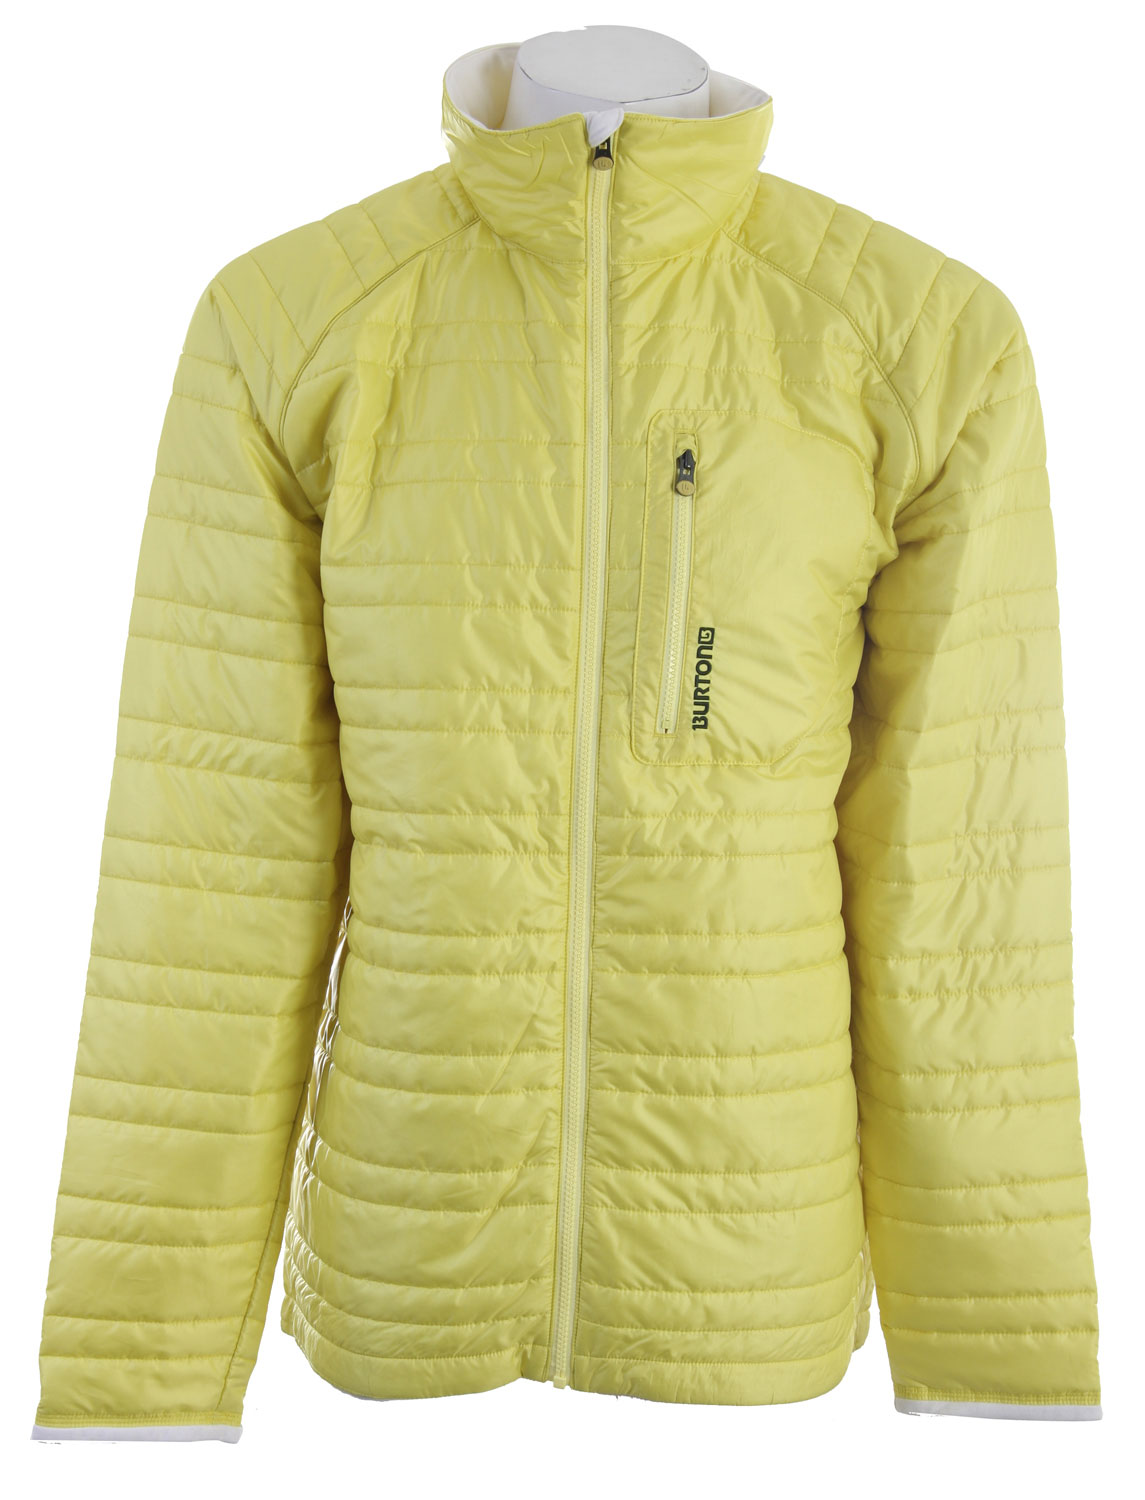 Snowboard This lightweight jacket features Thermacore Insulation, a Dryride Thermex Super Soft nylon shell, and micro fleece chin guard. Regardless of the conditions outside, the Burton Decibel Insulator Snowboard jacket will be the yin to your yang. The perfect insulating layer for any snowboard jacket shell. Key Features of the Burton Decibel Insulated Snowboard Jacket Barrier Yellow: DRYRIDE Thermex Super Soft Nylon [600MM] Thermacore Insulation Snap-Back Powder Skirt Microfleece Chin Saver - $71.95